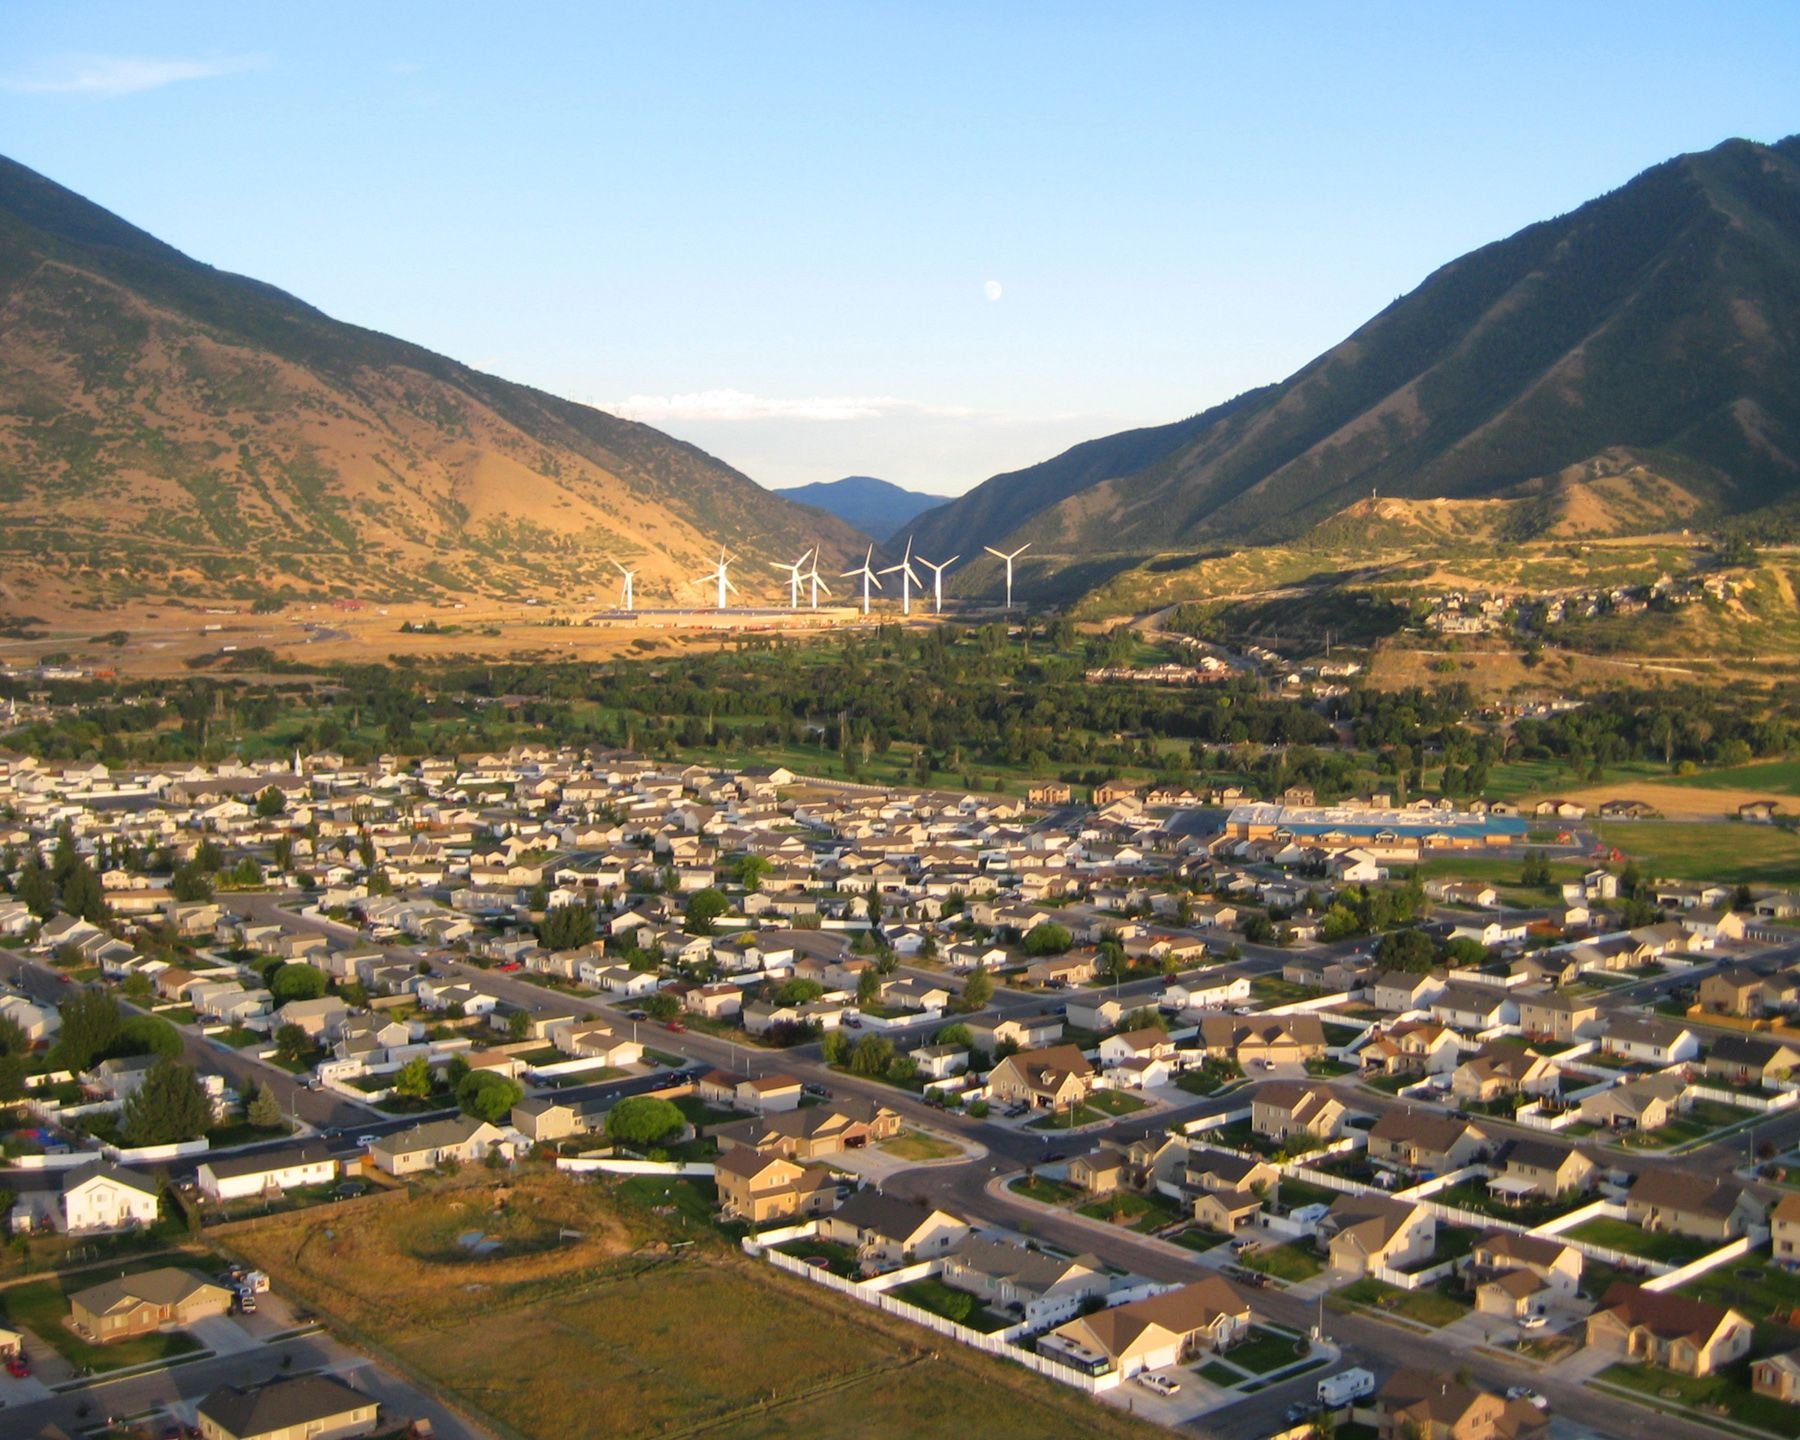 Spanish Fork, Utah Notice the Wind Mills at the mouth